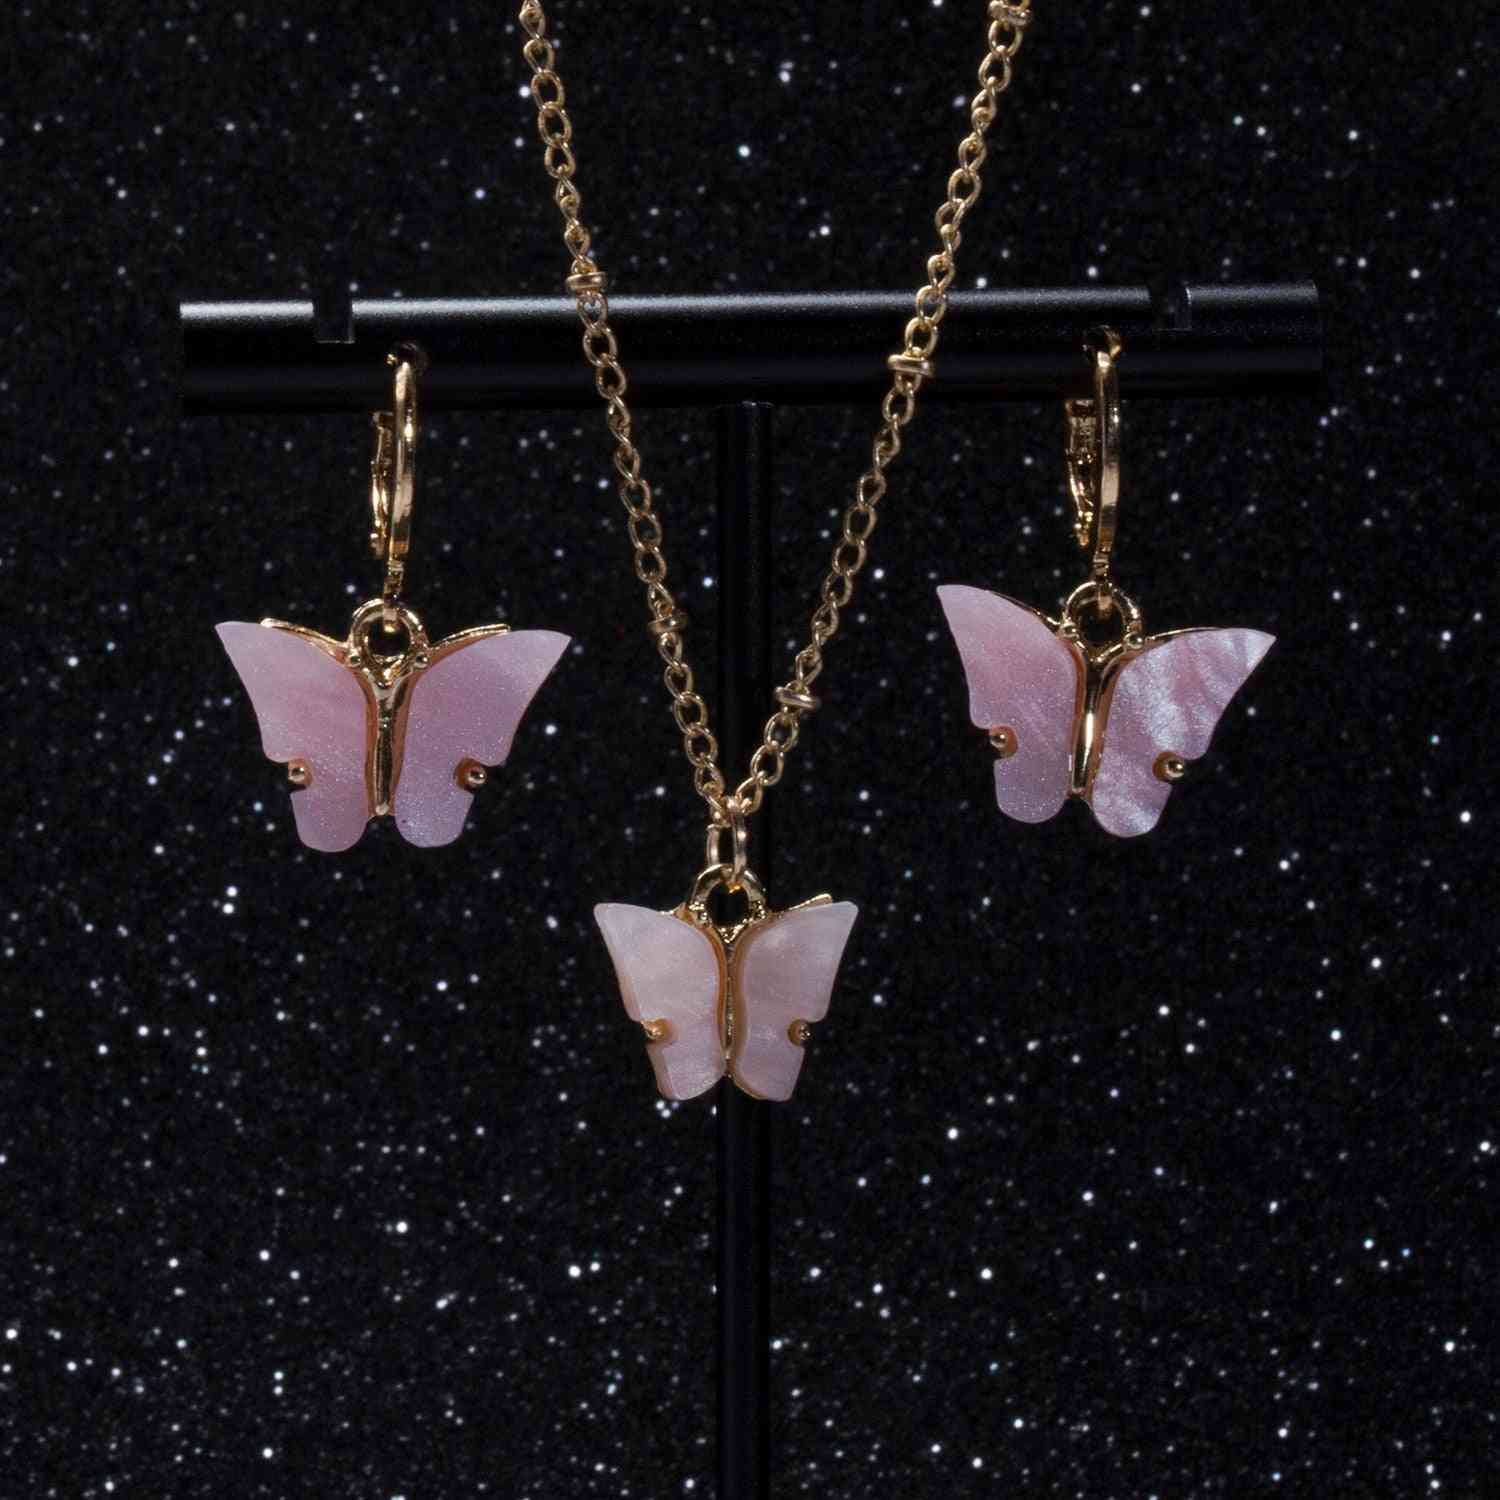 Acrylic Butterfly Earrings, Pendant, Necklaces Combination Set, Alloy Chain Jewelry Sets